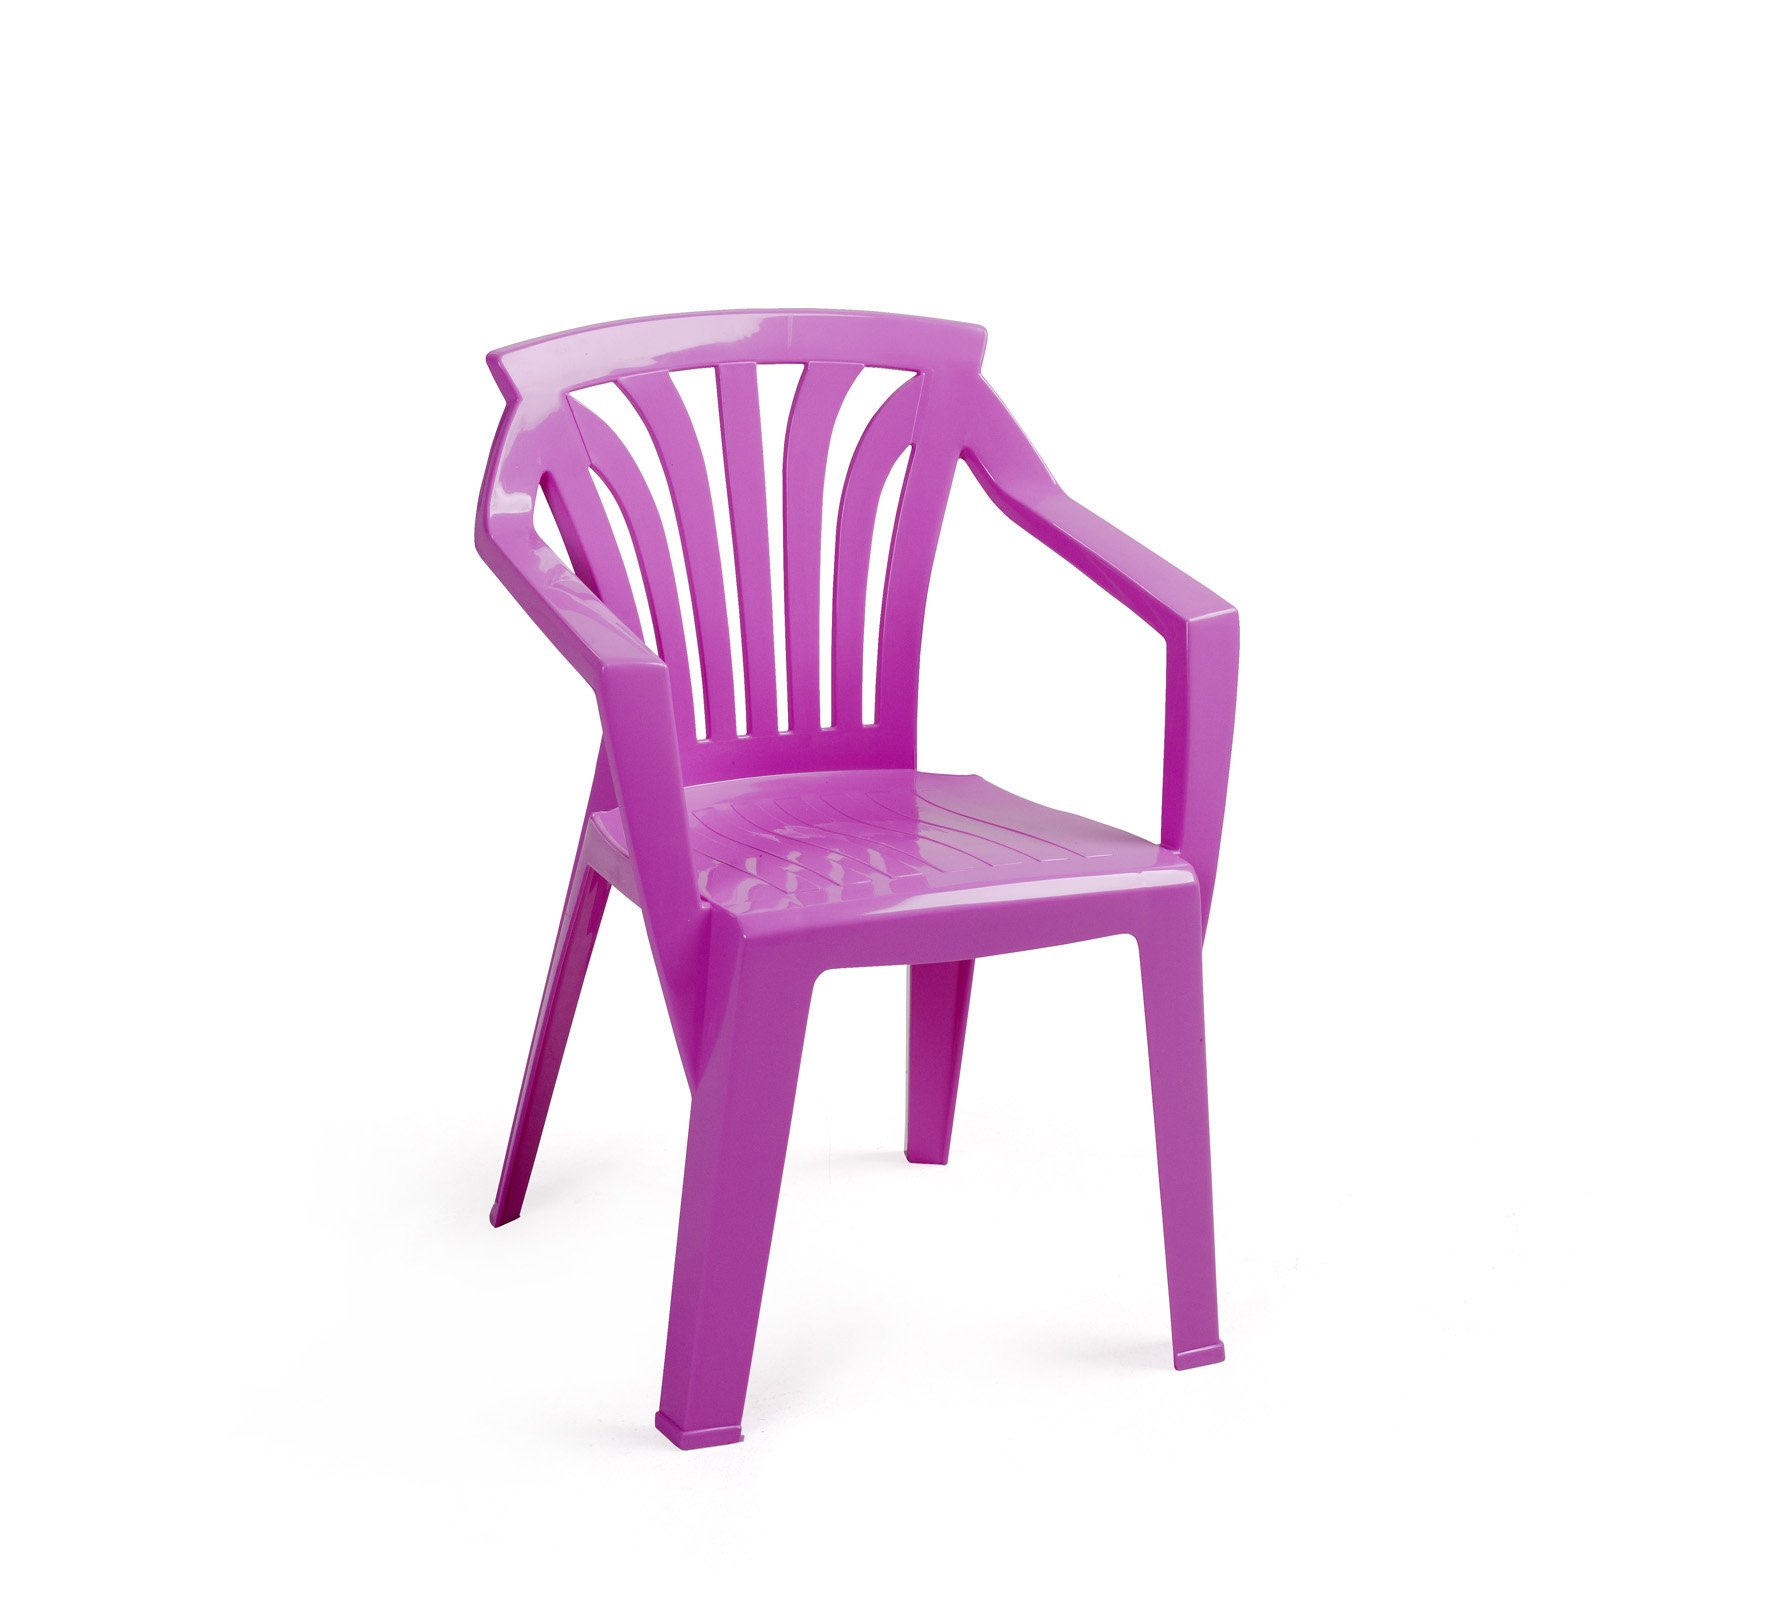 Ariel Chair Outdoor Furniture NA 40278 2 ...